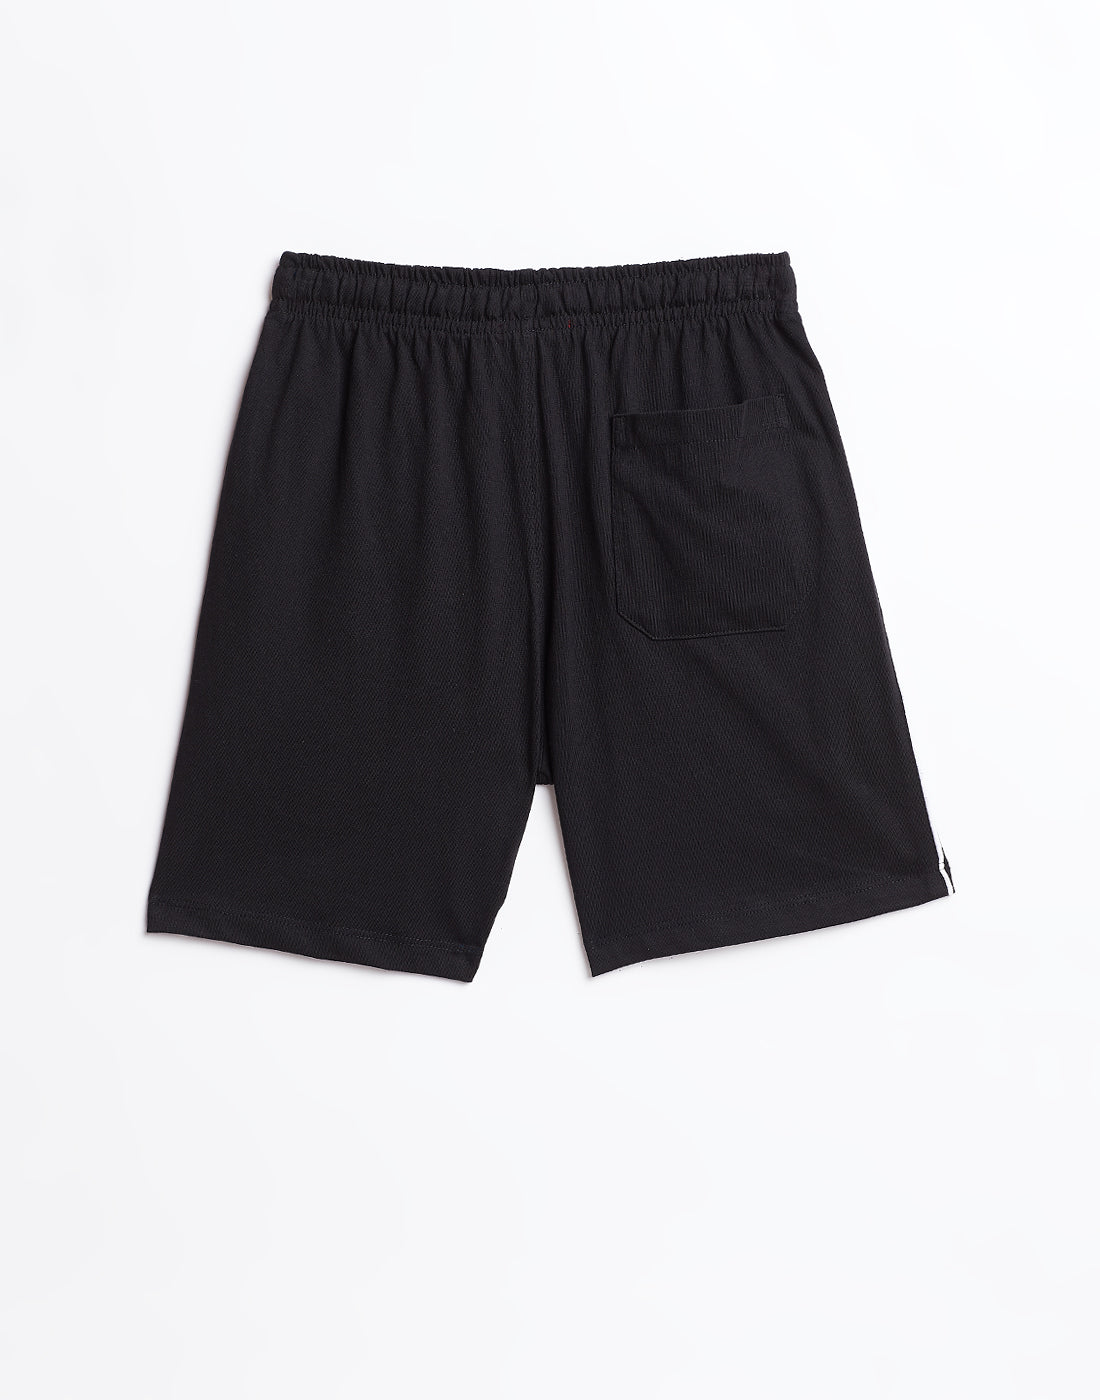 Ooctave Boys Black Shorts